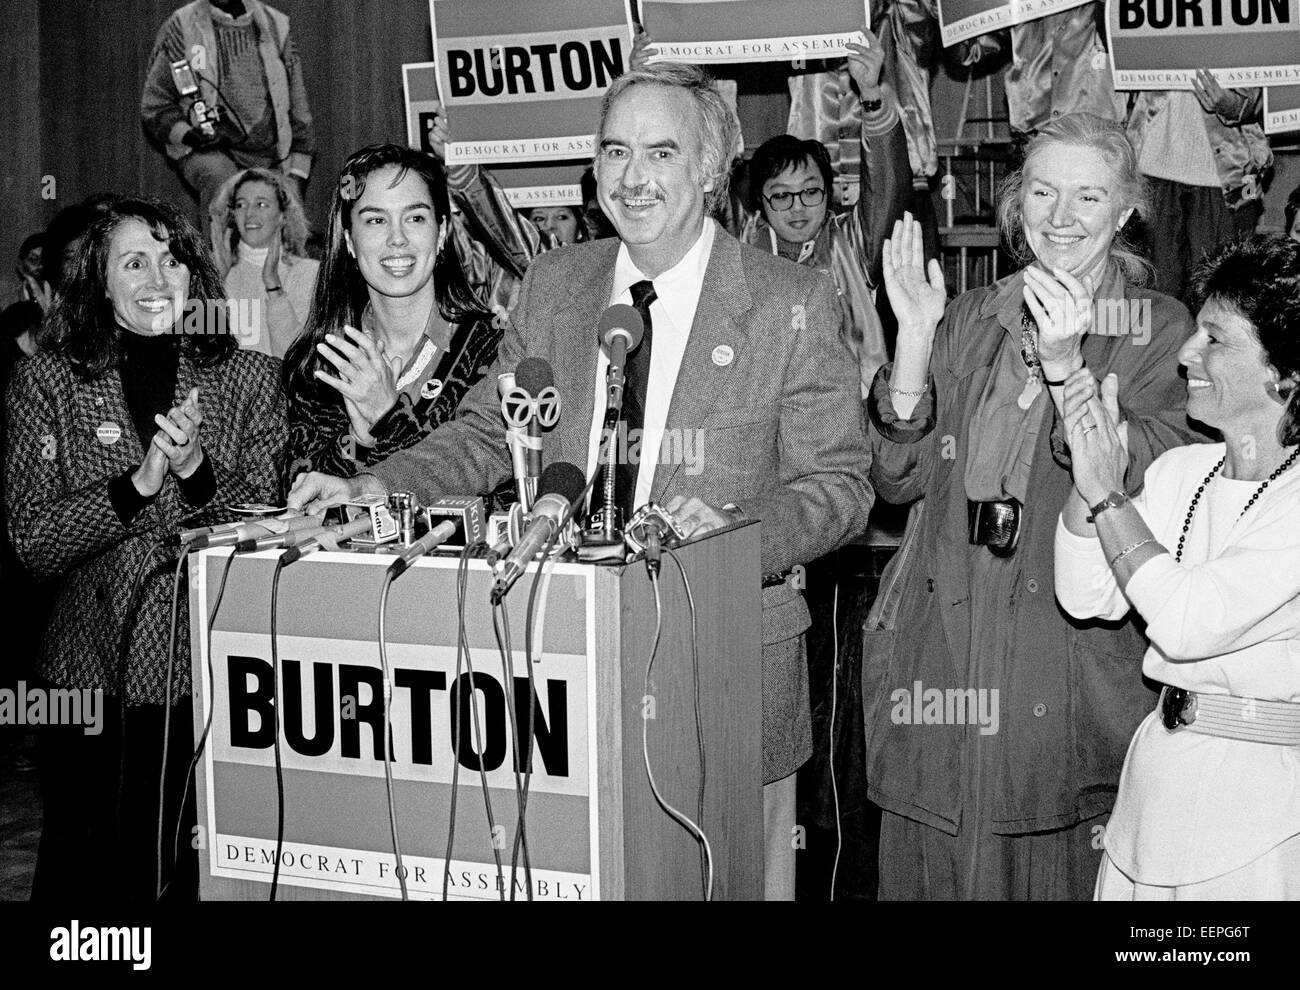 John Burton campaigns for California State Assembly 1/1988 - Stock Image